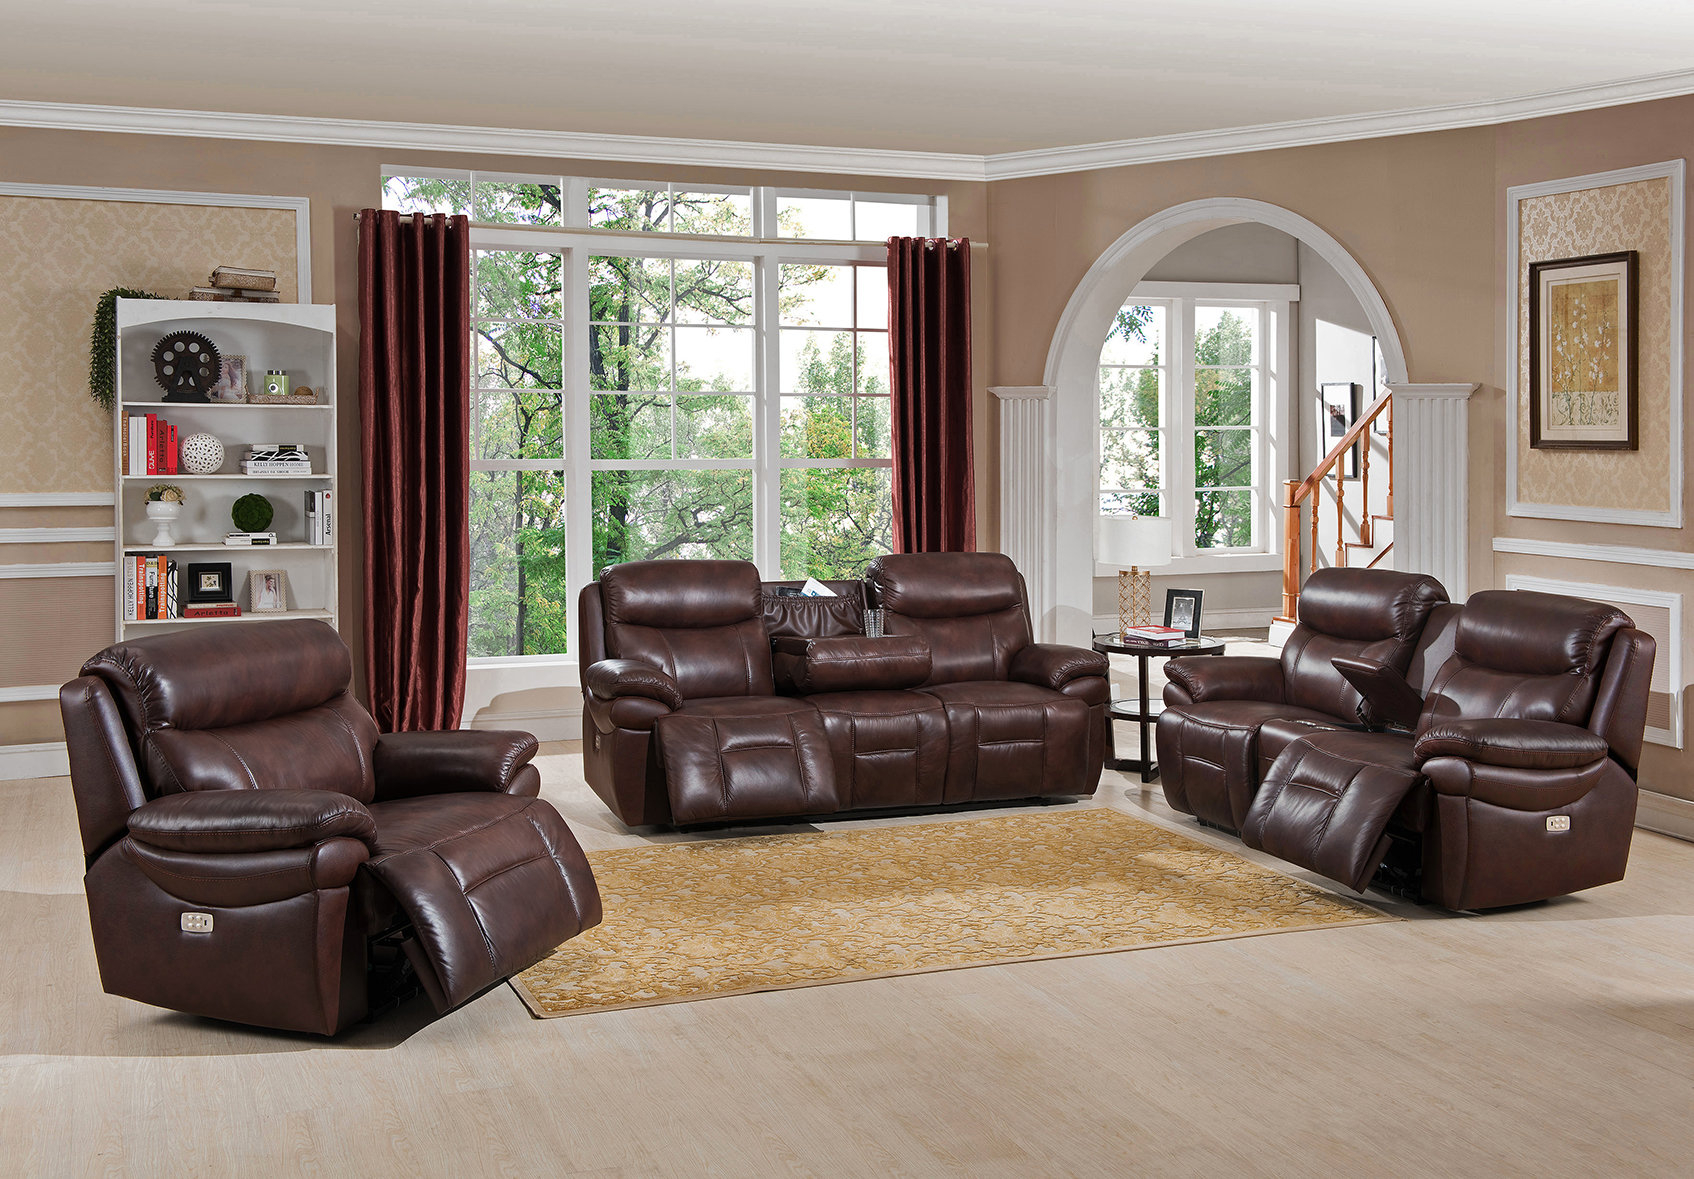 Red Barrel Studio Kubik Reclining 3 Piece Leather Living Room Set pertaining to 13 Awesome Ways How to Improve 3 Piece Leather Reclining Living Room Set